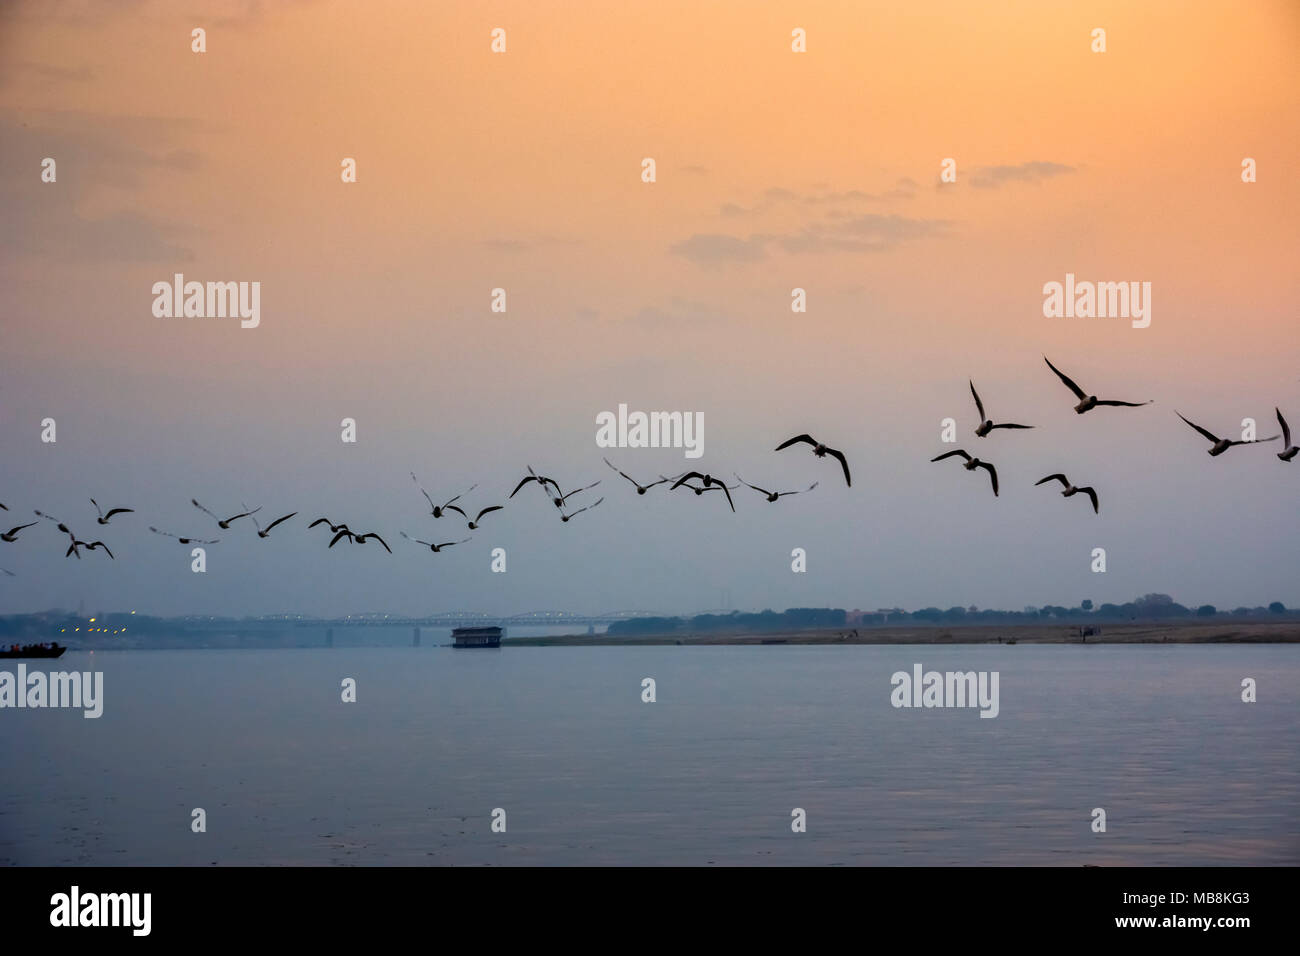 A flock of birds flies over the Ganges River at sunset at Varanesi, Uttar Pradesh, India Stock Photo